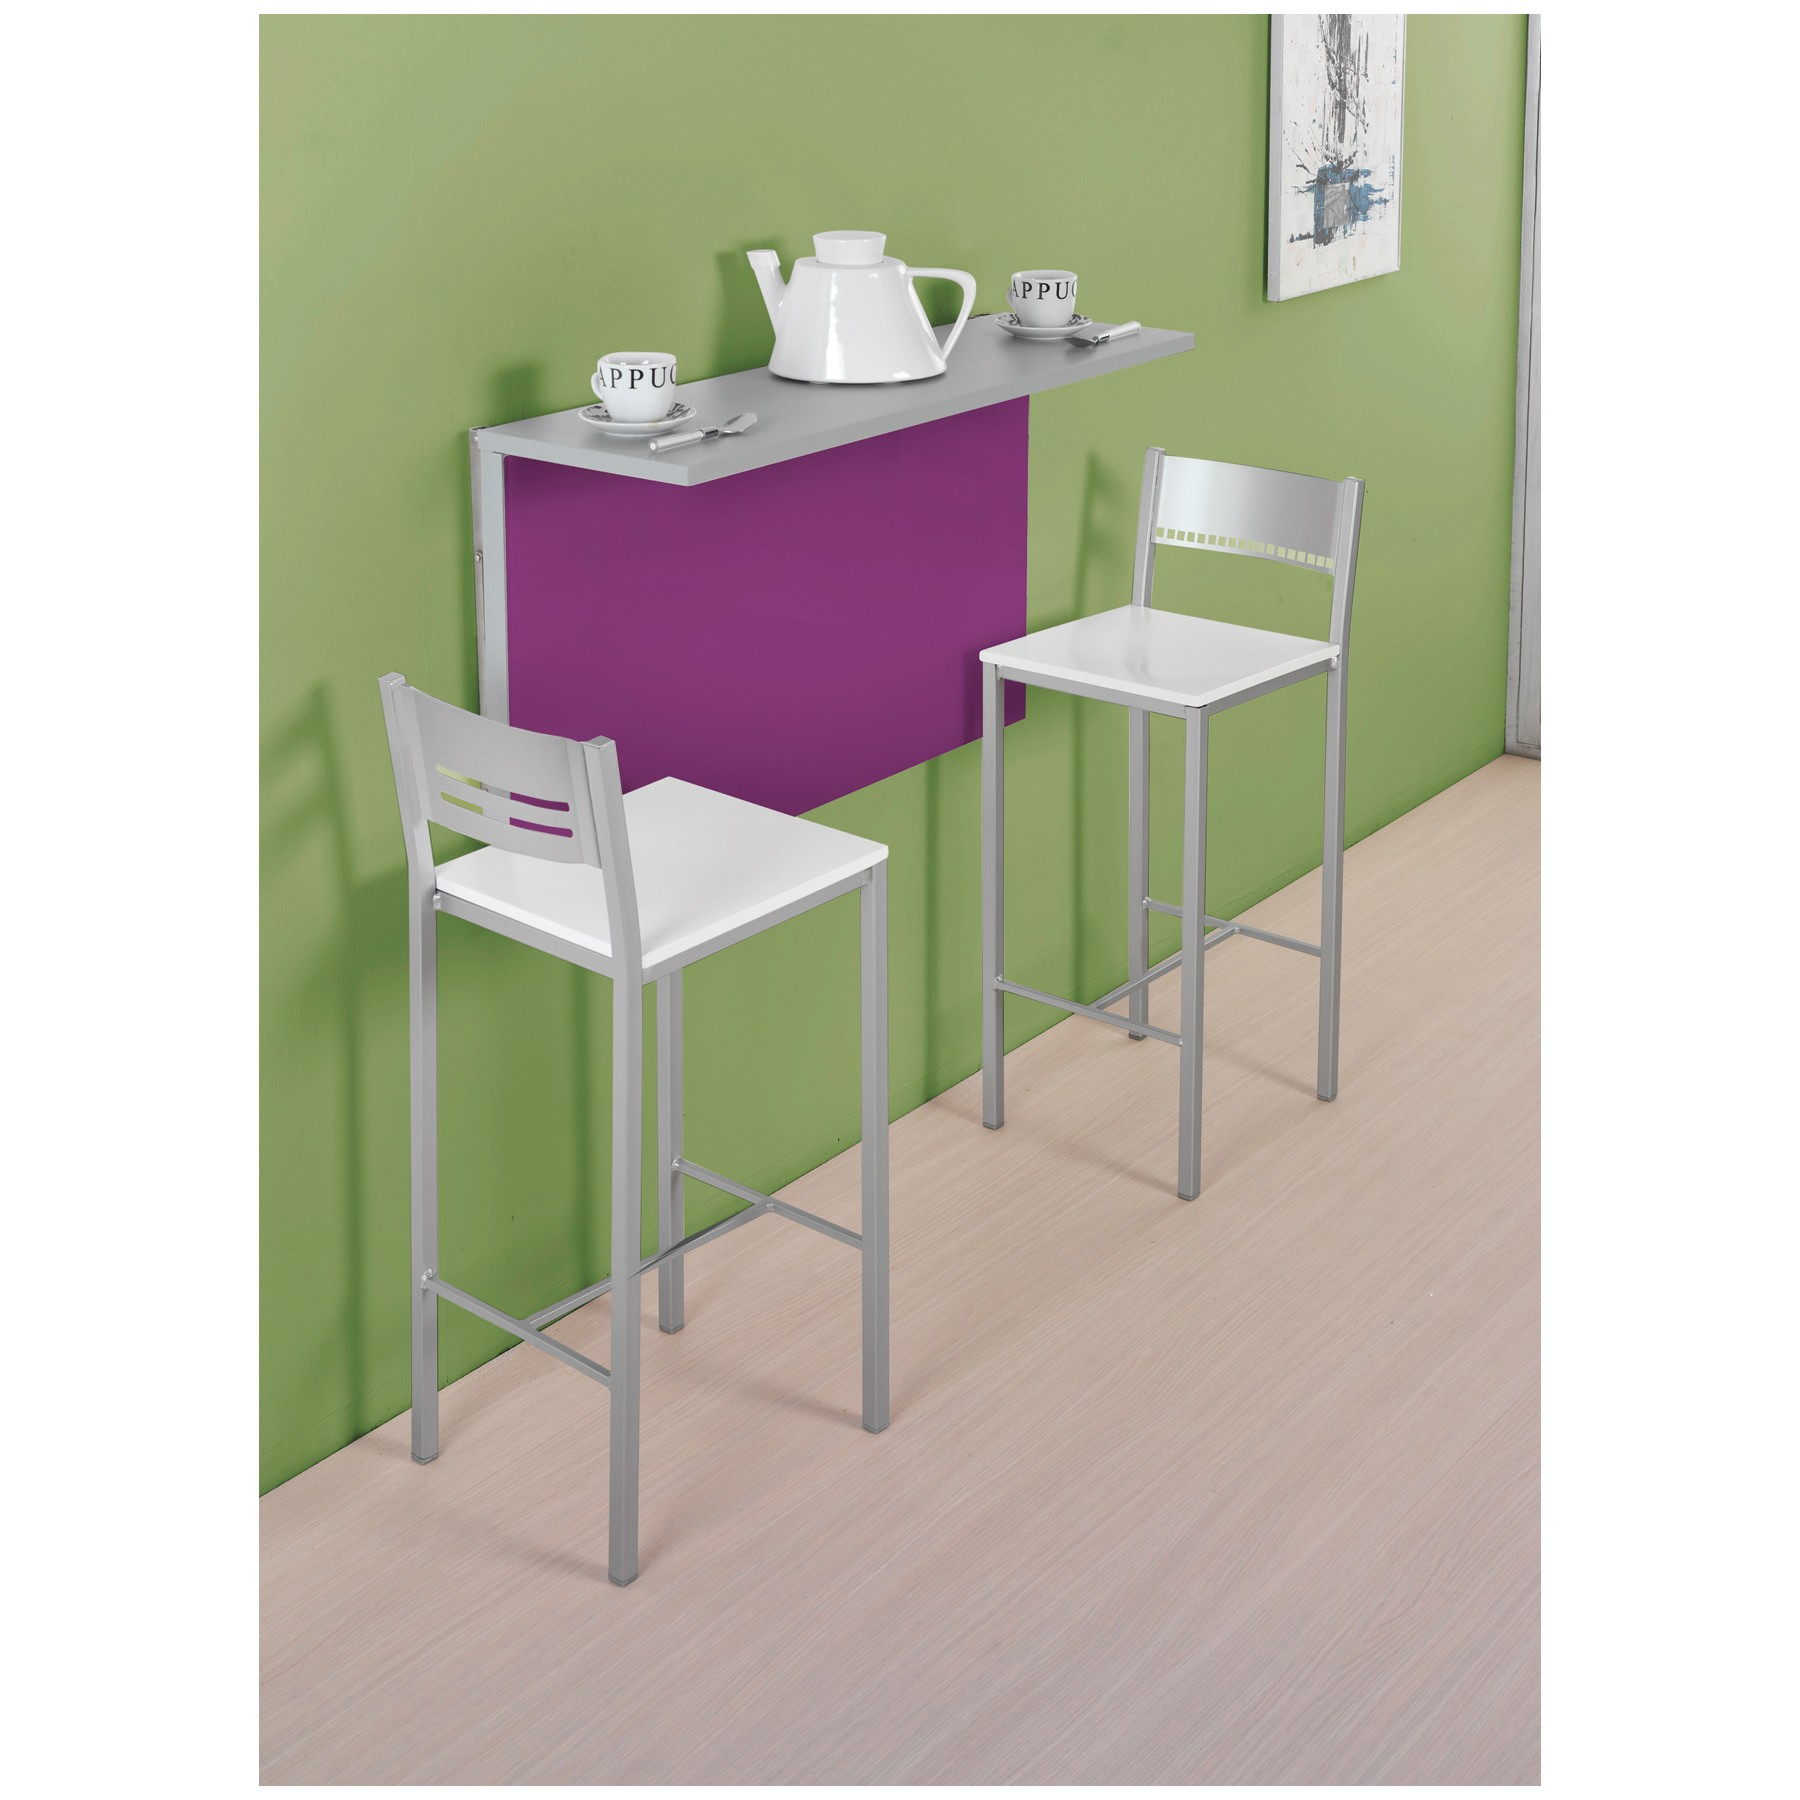 Mesas de cocina extensibles pequeas mesa extensible de for Mesa abatible conforama